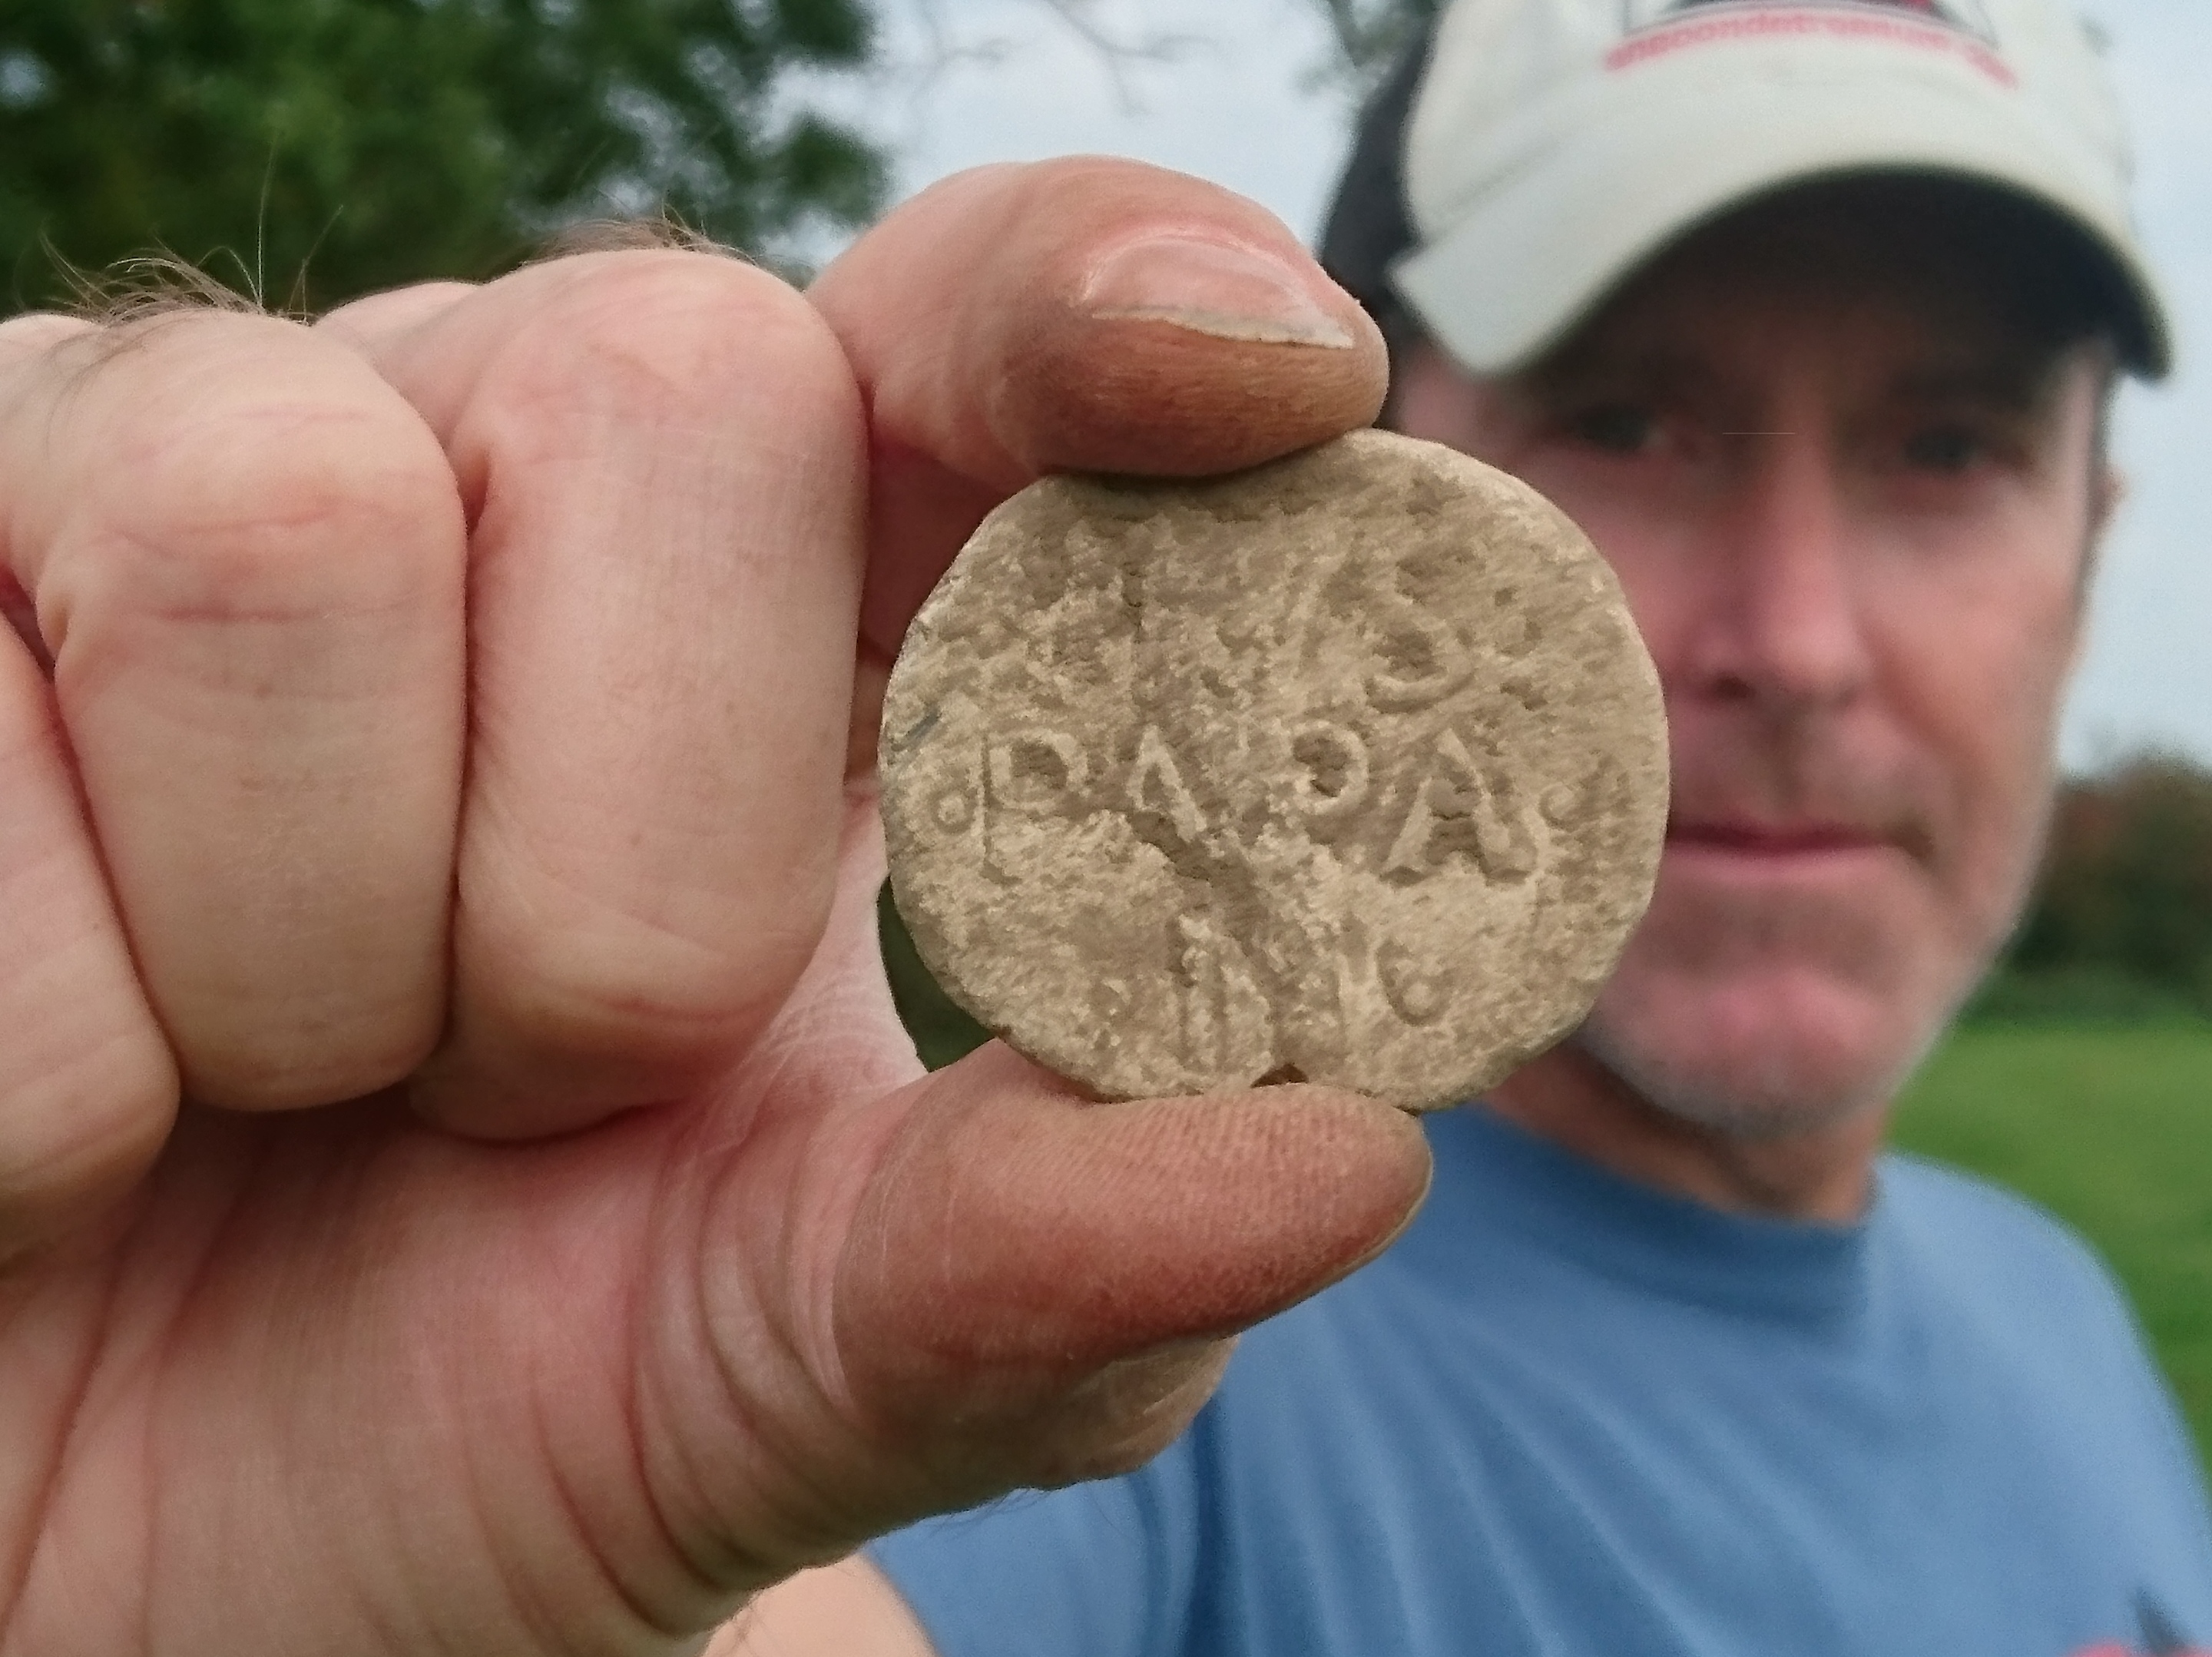 What A Find Medieval Papal Seal Found By Metal Detectorist In Oswestry Shropshire Star